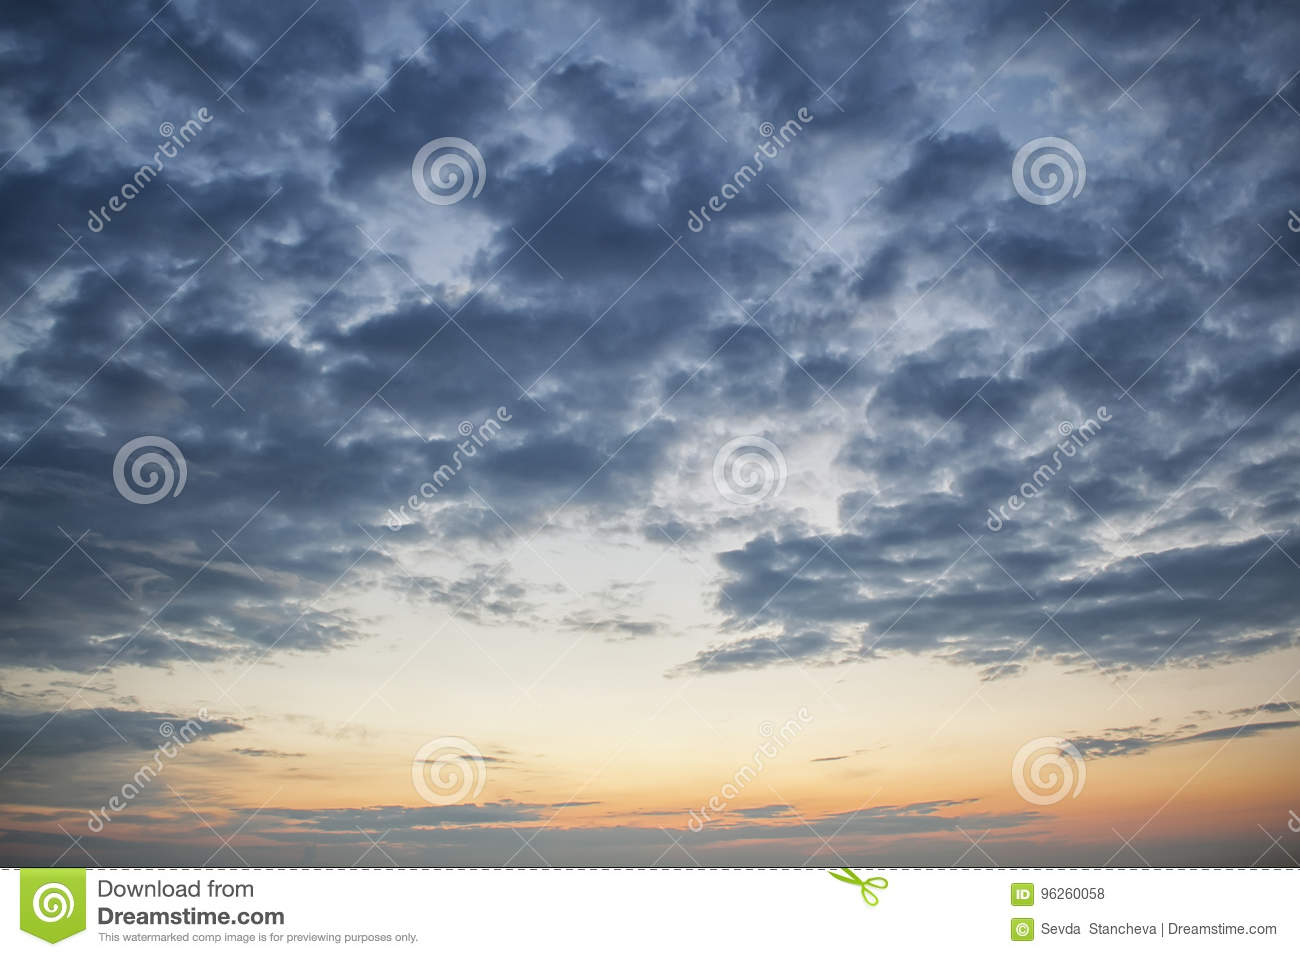 Dramatic dark cloudy sky over sea, natural photo background. Dark storm clouds background